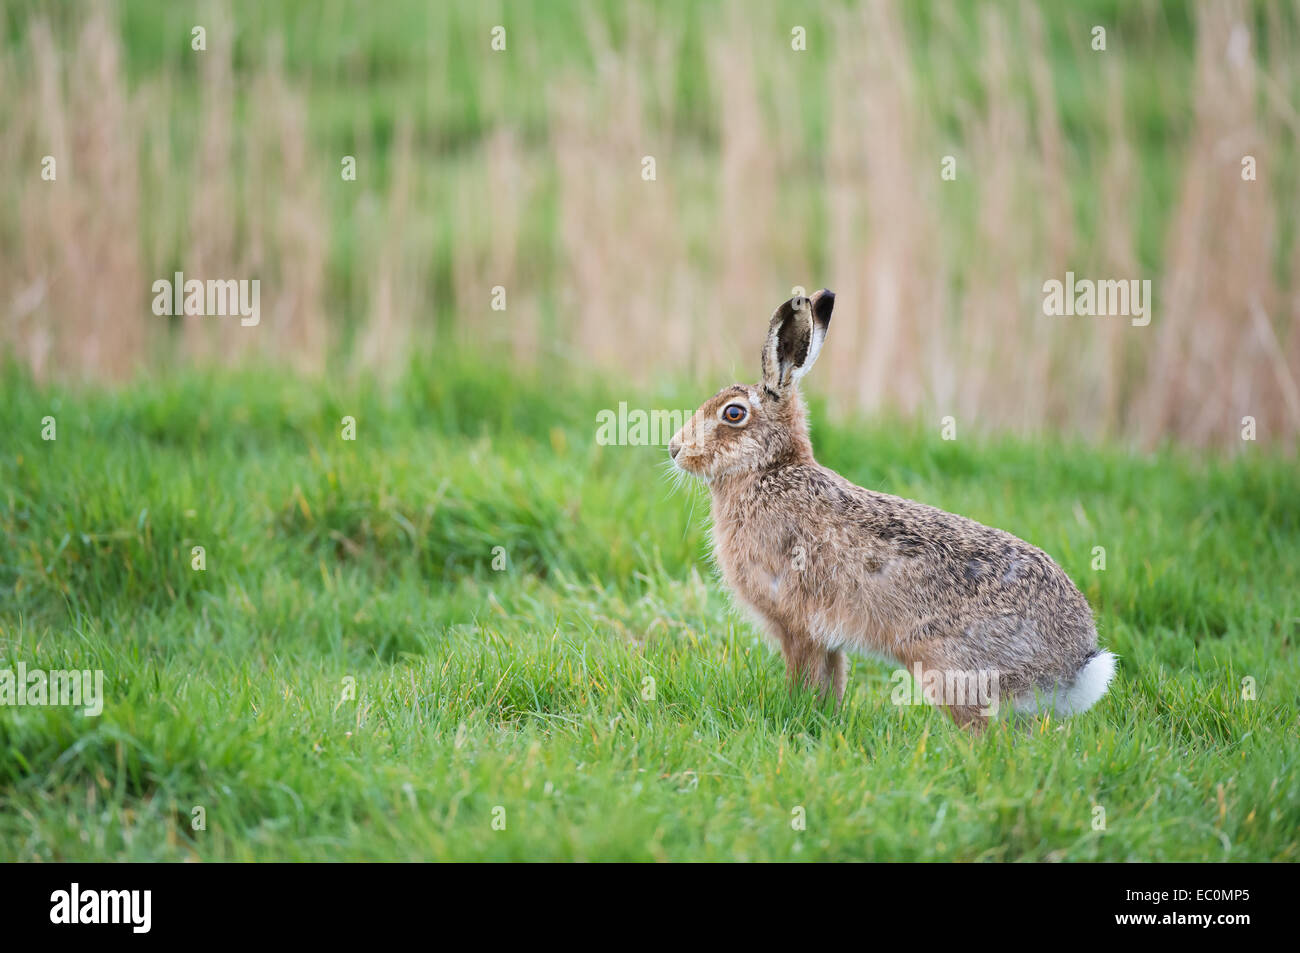 European Brown Hare (Lepus europaeus) in a meadow, UK. Stock Photo